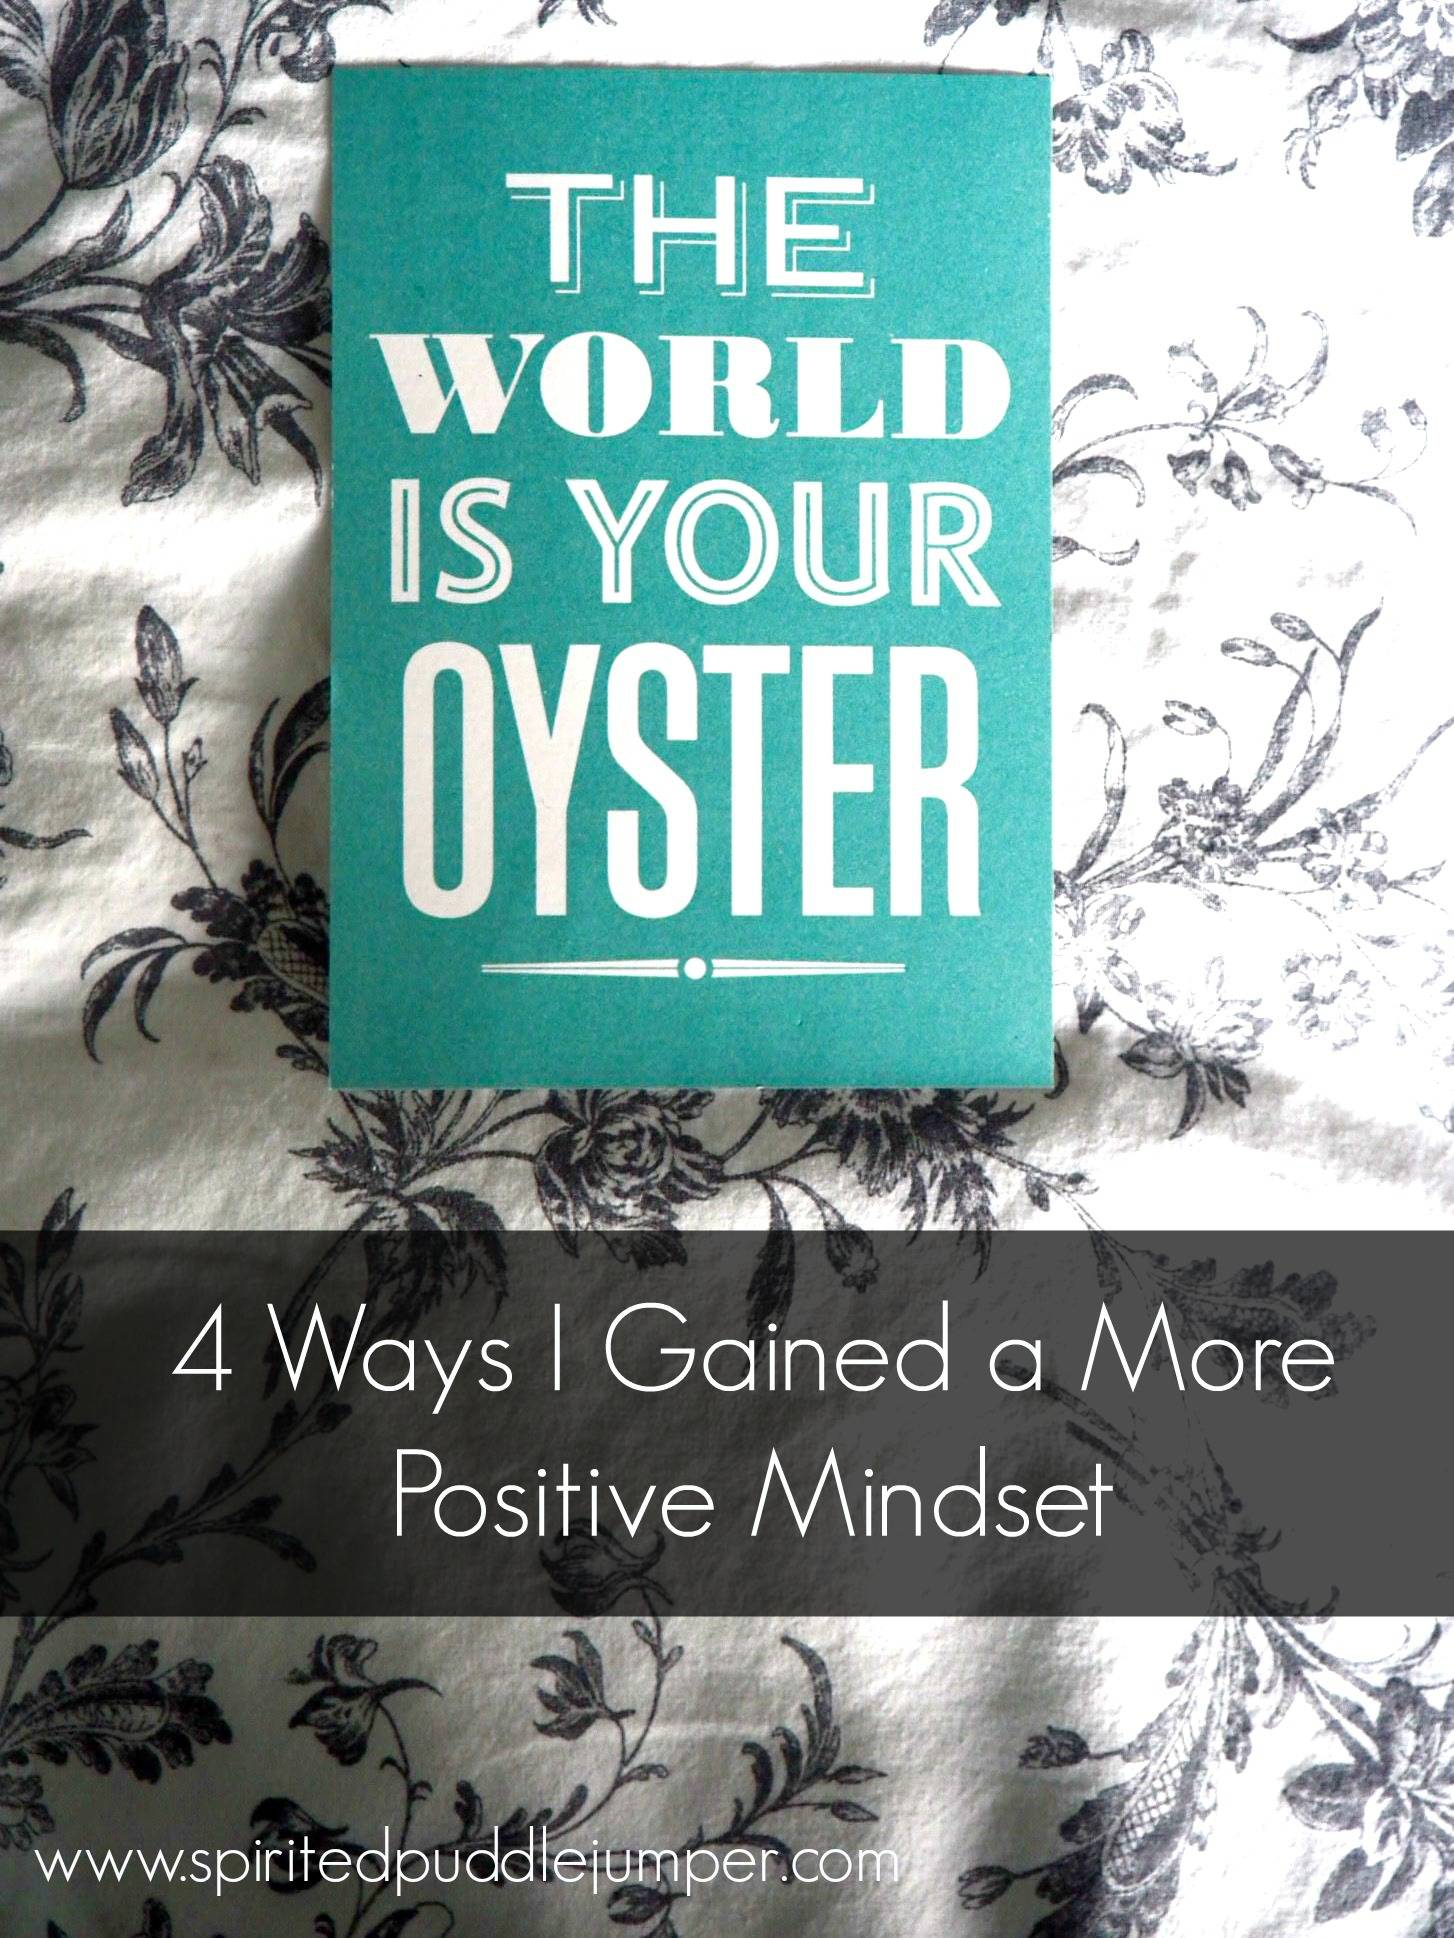 4 Ways I Gained a More Positive Mindset